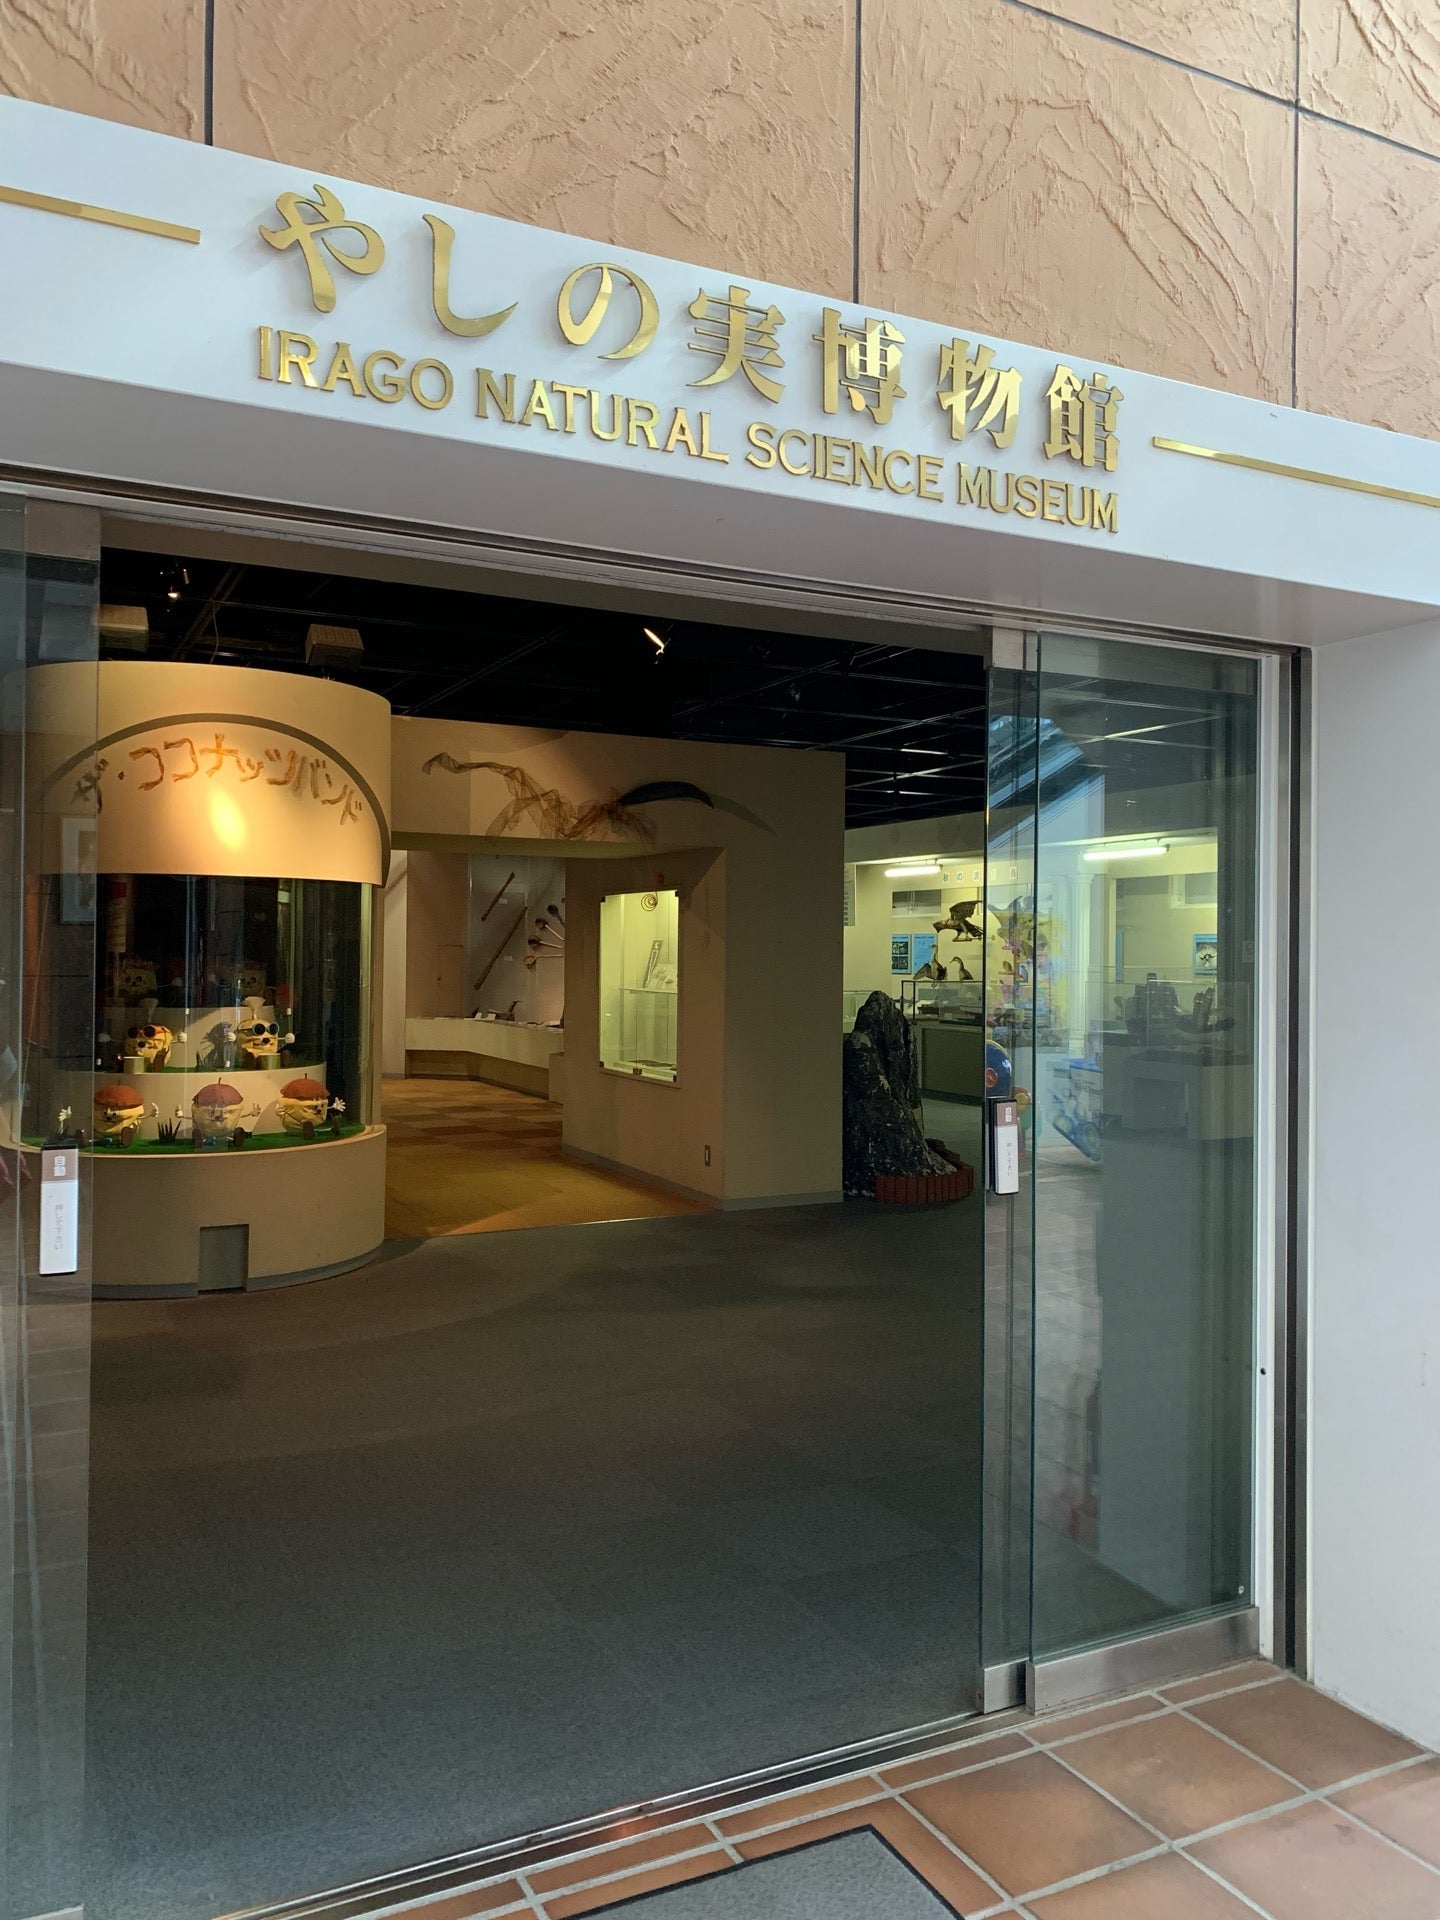 Tahara Attractions Photo Gallery